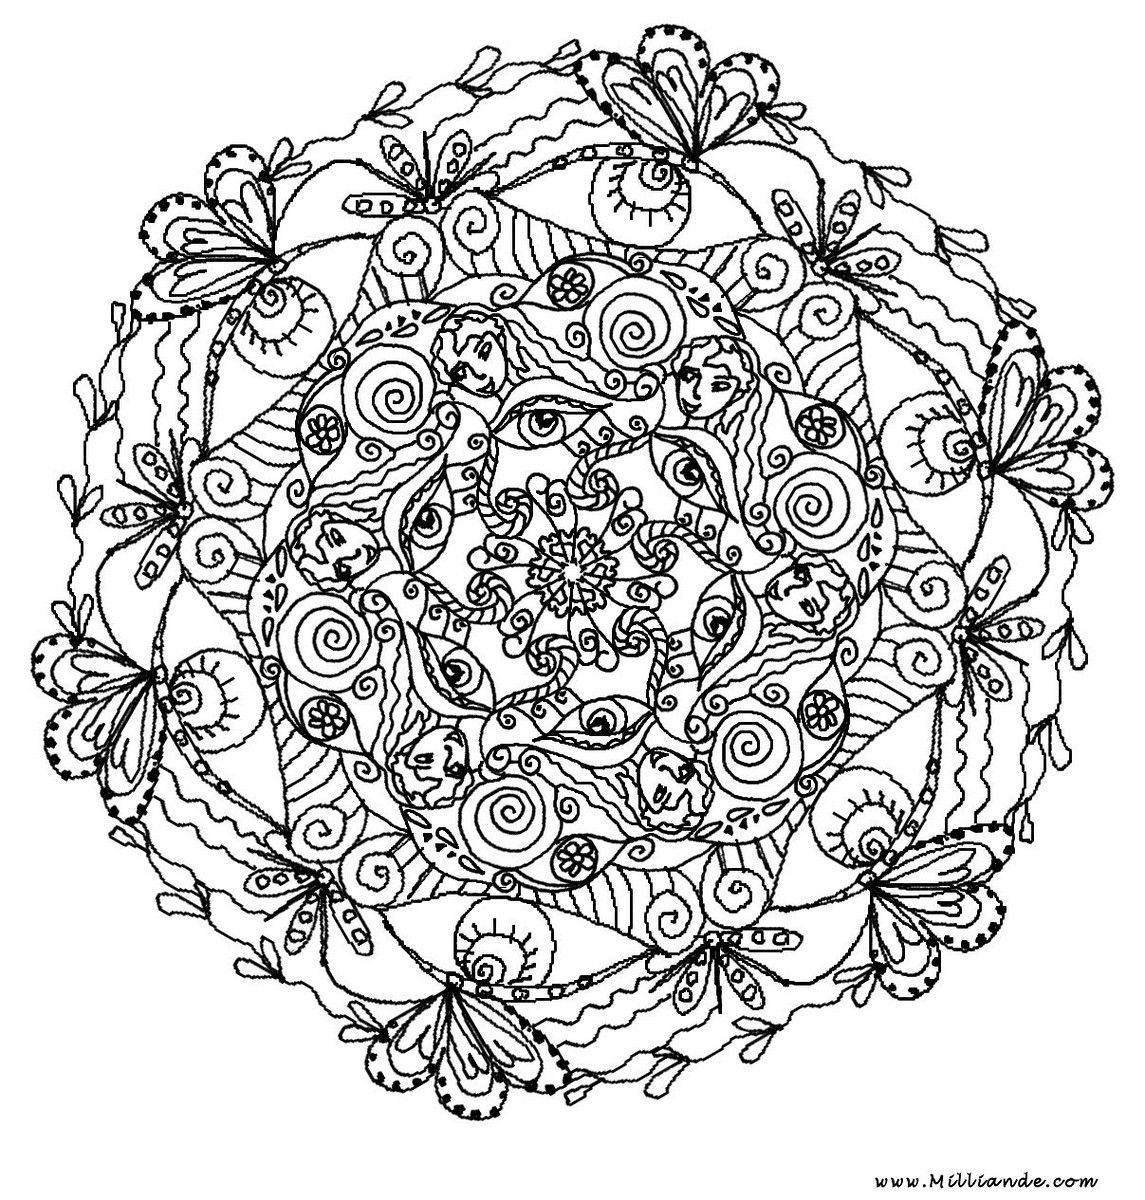 Center Yourself with Mandalas, Coloring Pages | Free coloring and ...